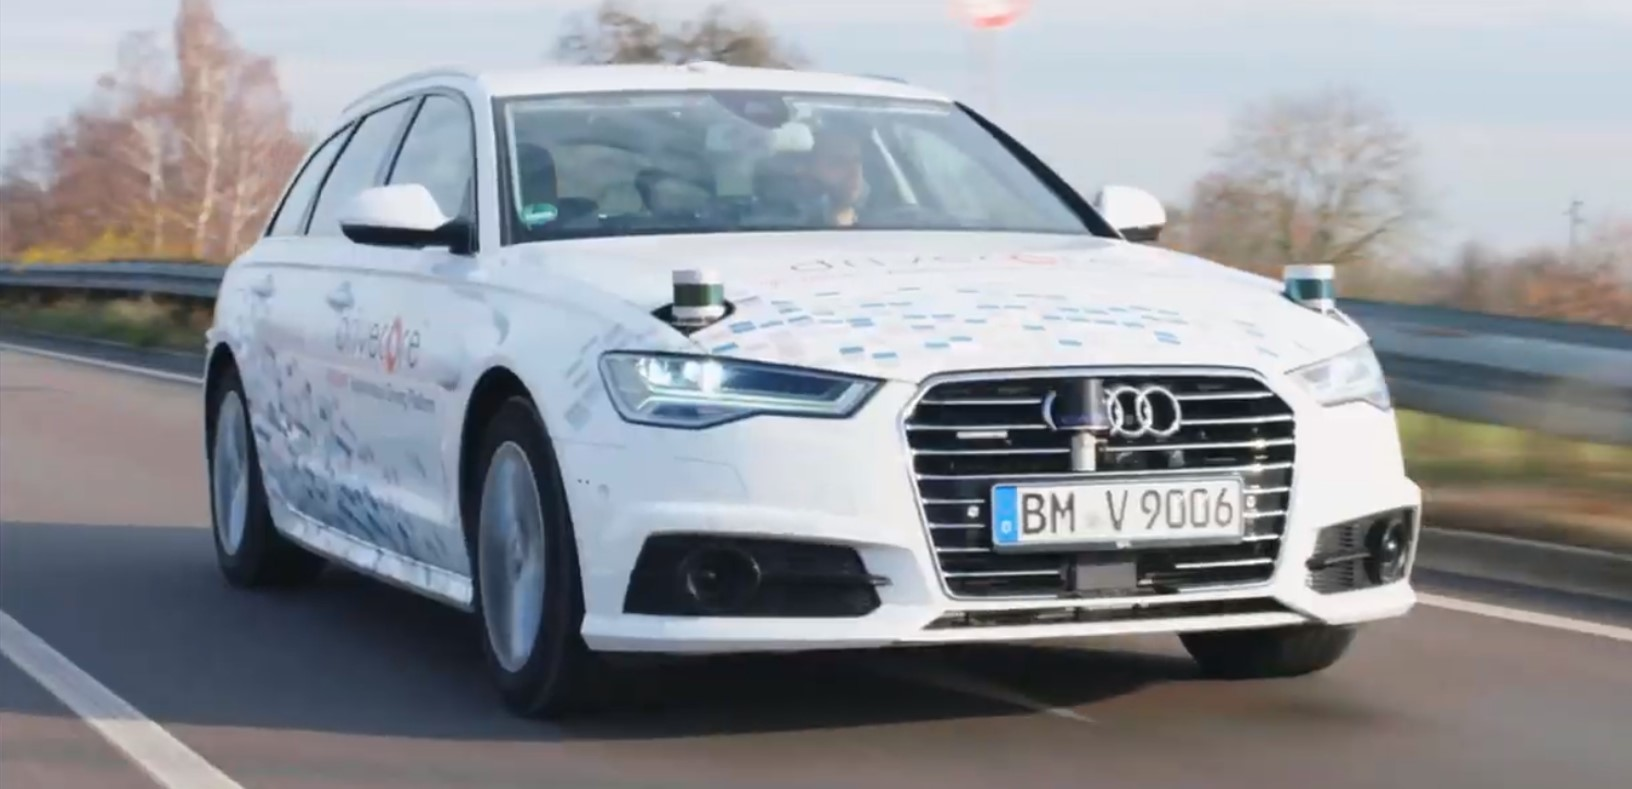 Visteon Participates in Research Project for Validating Autonomous Driving Systems